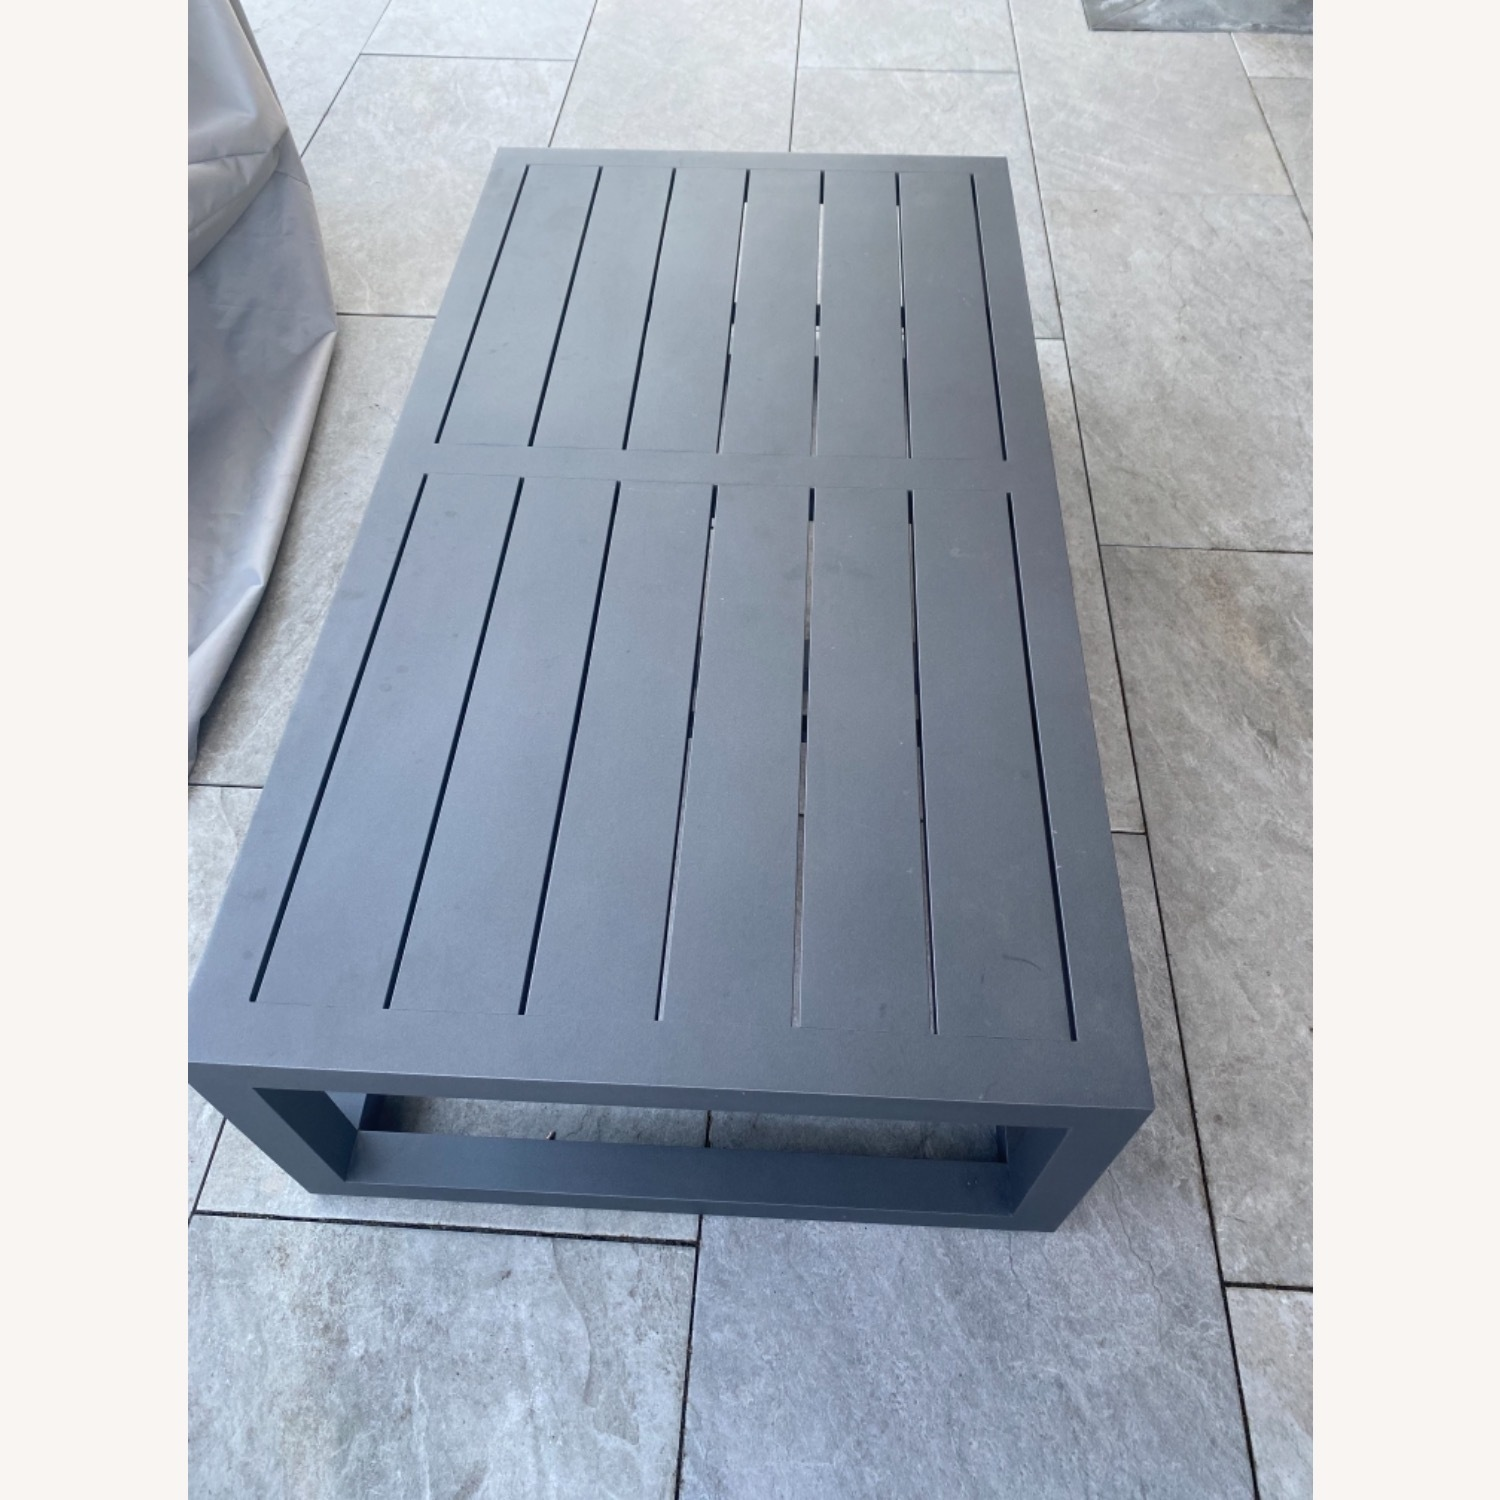 Restoration Hardware Outdoor Coffee Table - image-1